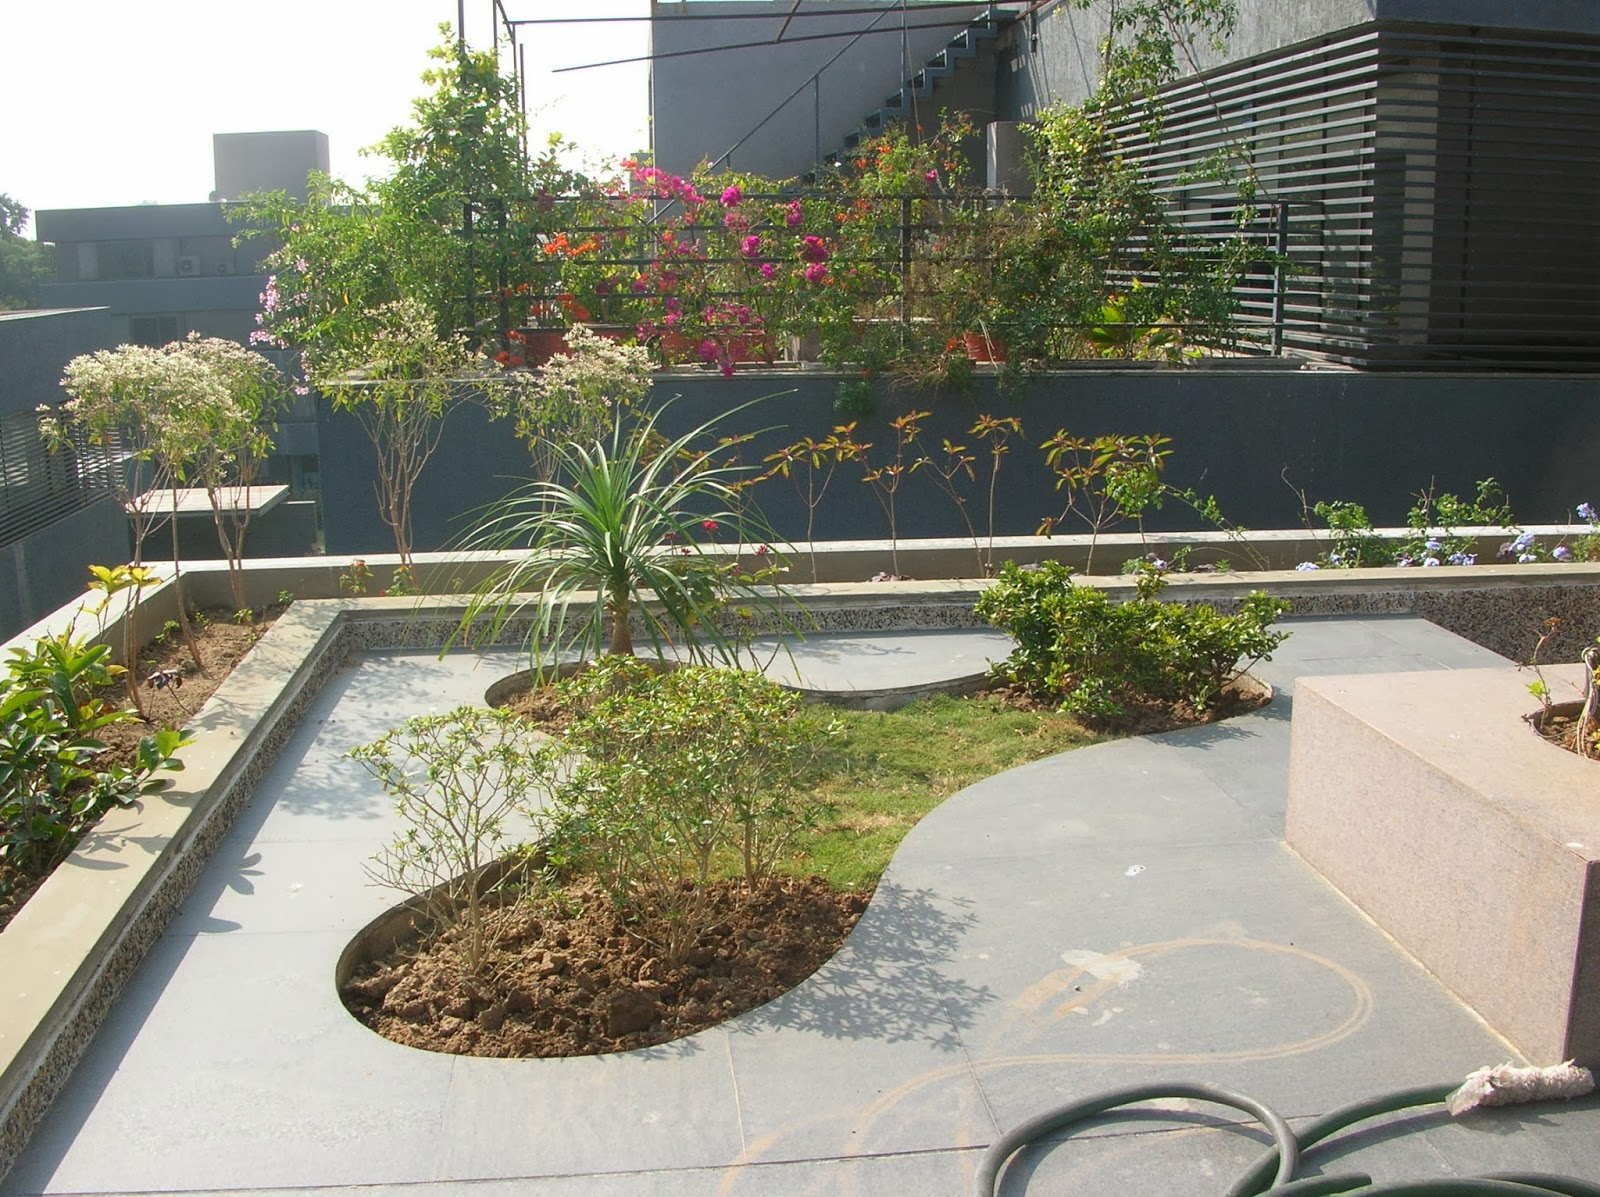 Bonsai trees and plants in ahmedabad for sale garden for House garden design india